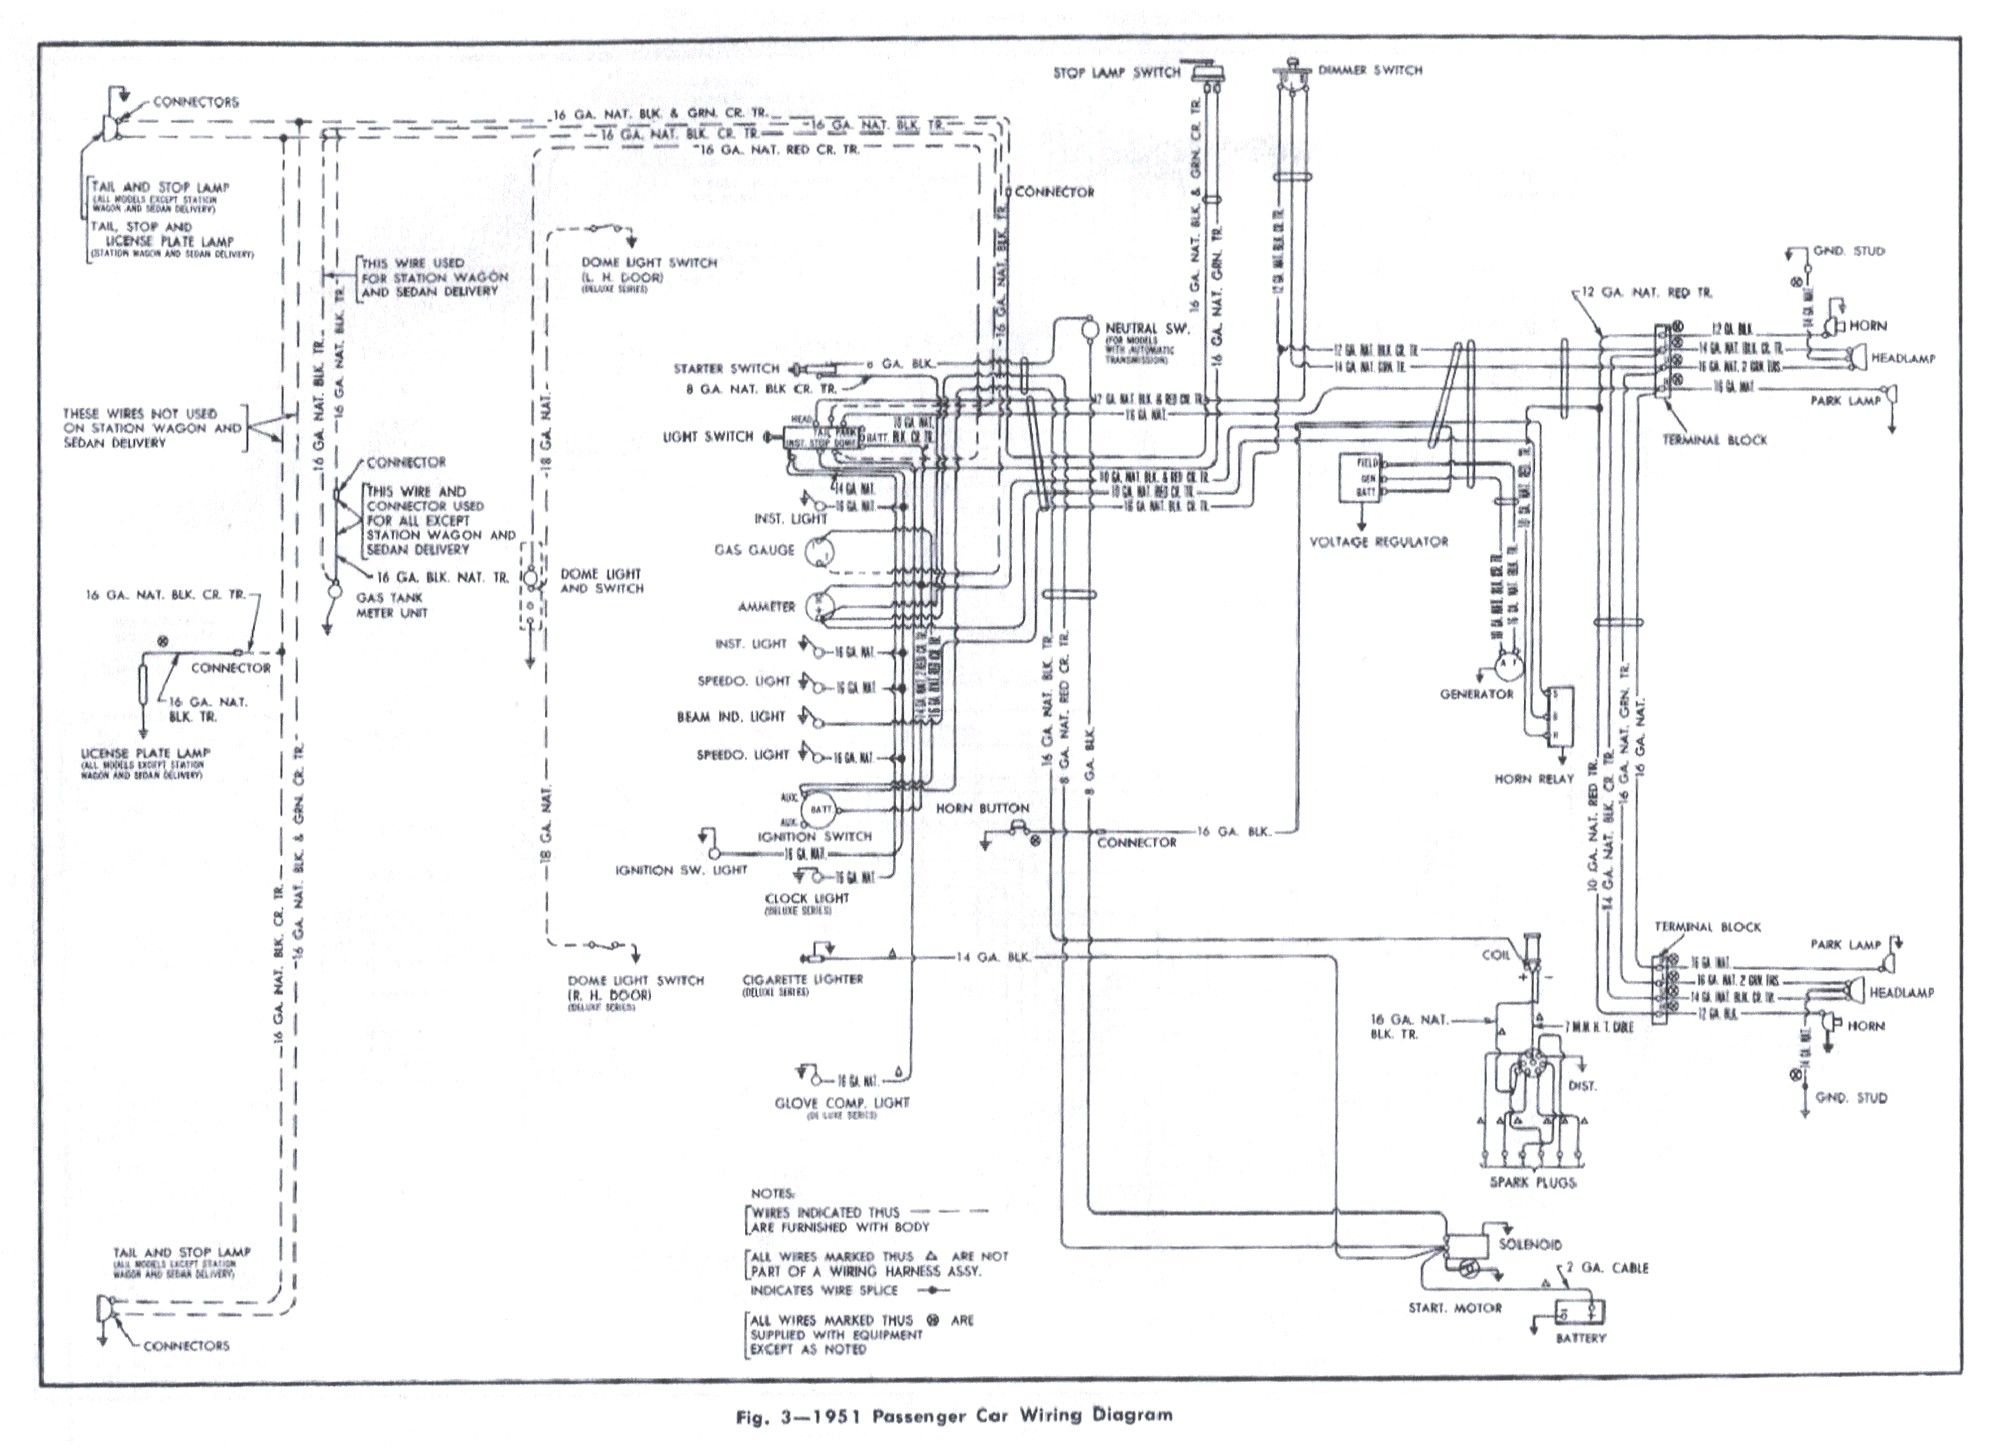 Pleasant 1951 Chevy Wiring Diagrams Automotive Charging System Wiring Library Wiring Cloud Uslyletkolfr09Org